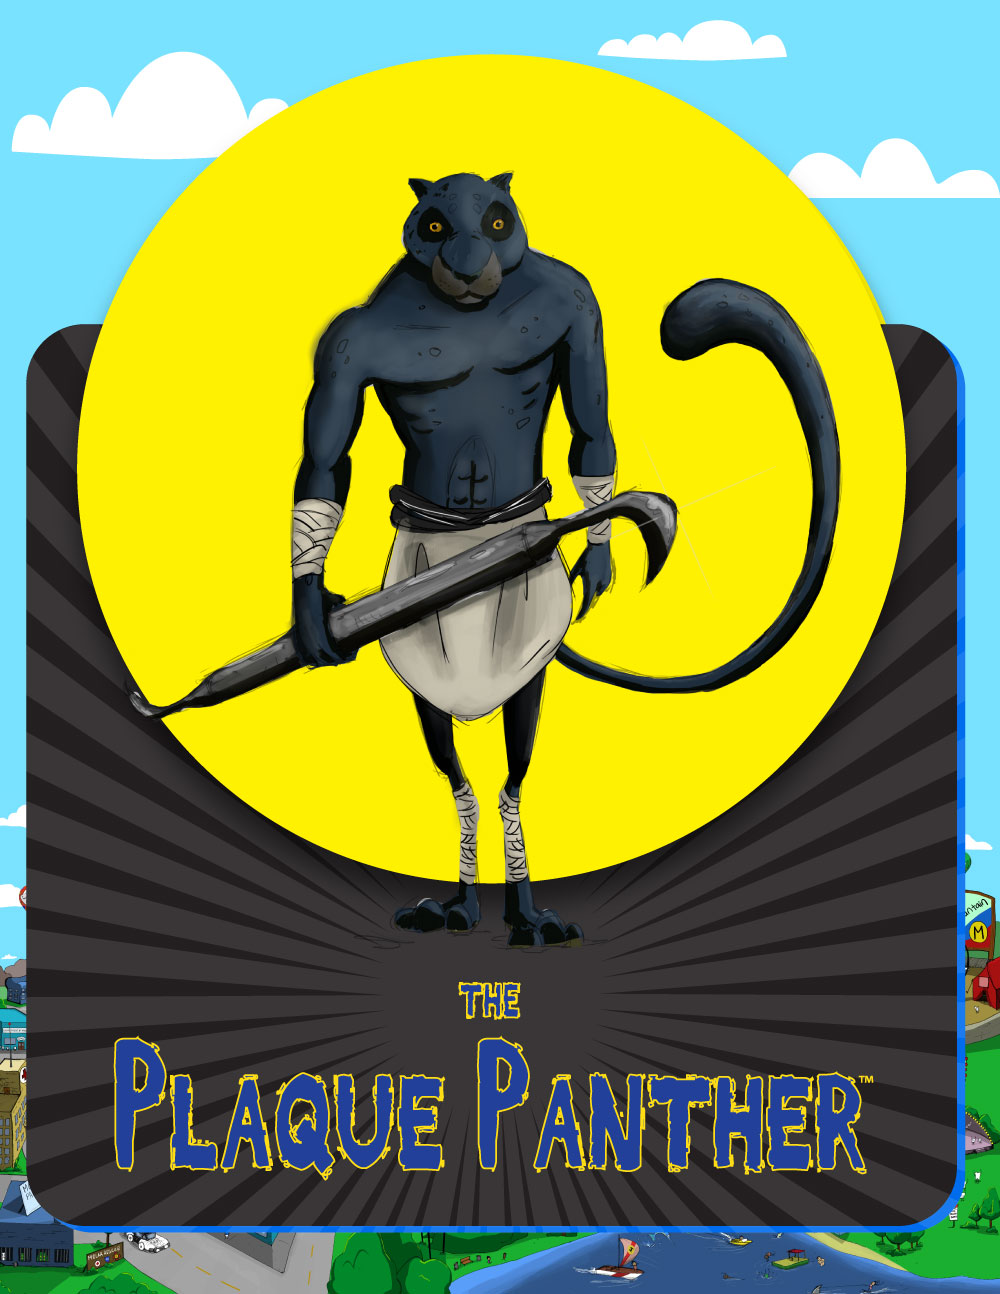 Black Panther - Plaque Panther